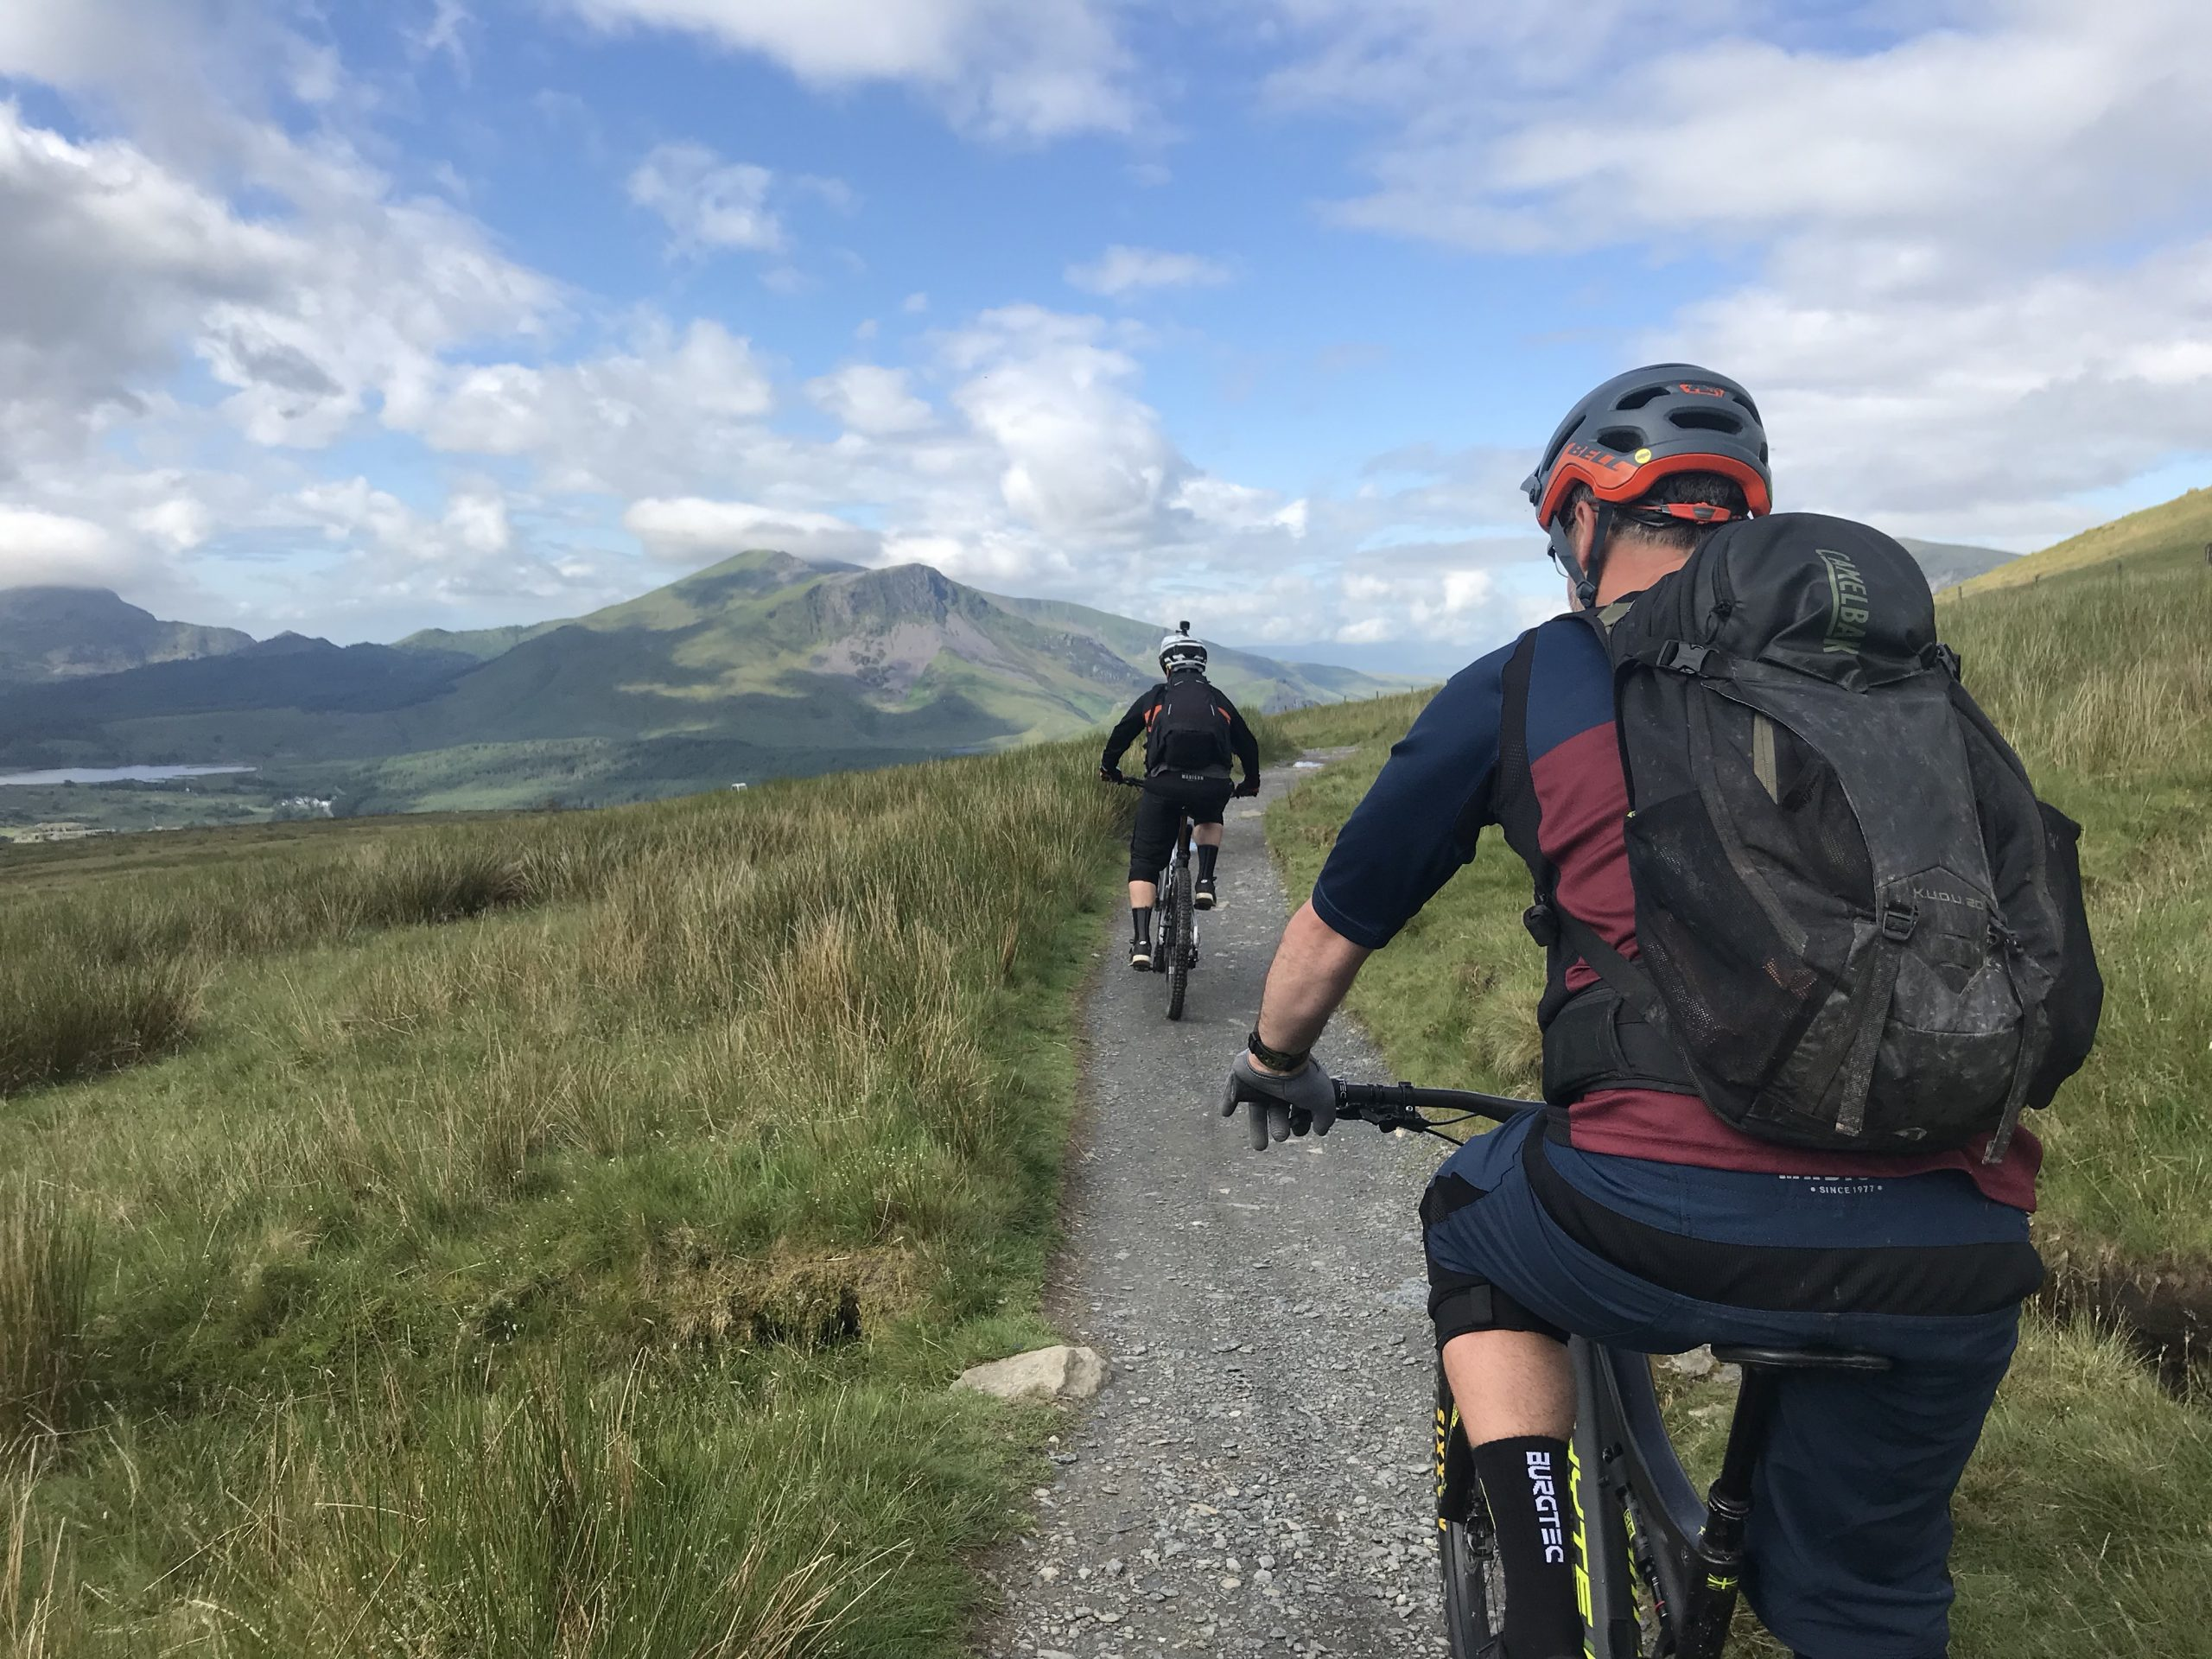 British cycling Mountain bike leaders, guided rides Wales, Mountain bike leadership, Adventures across wales, MTB guided rides